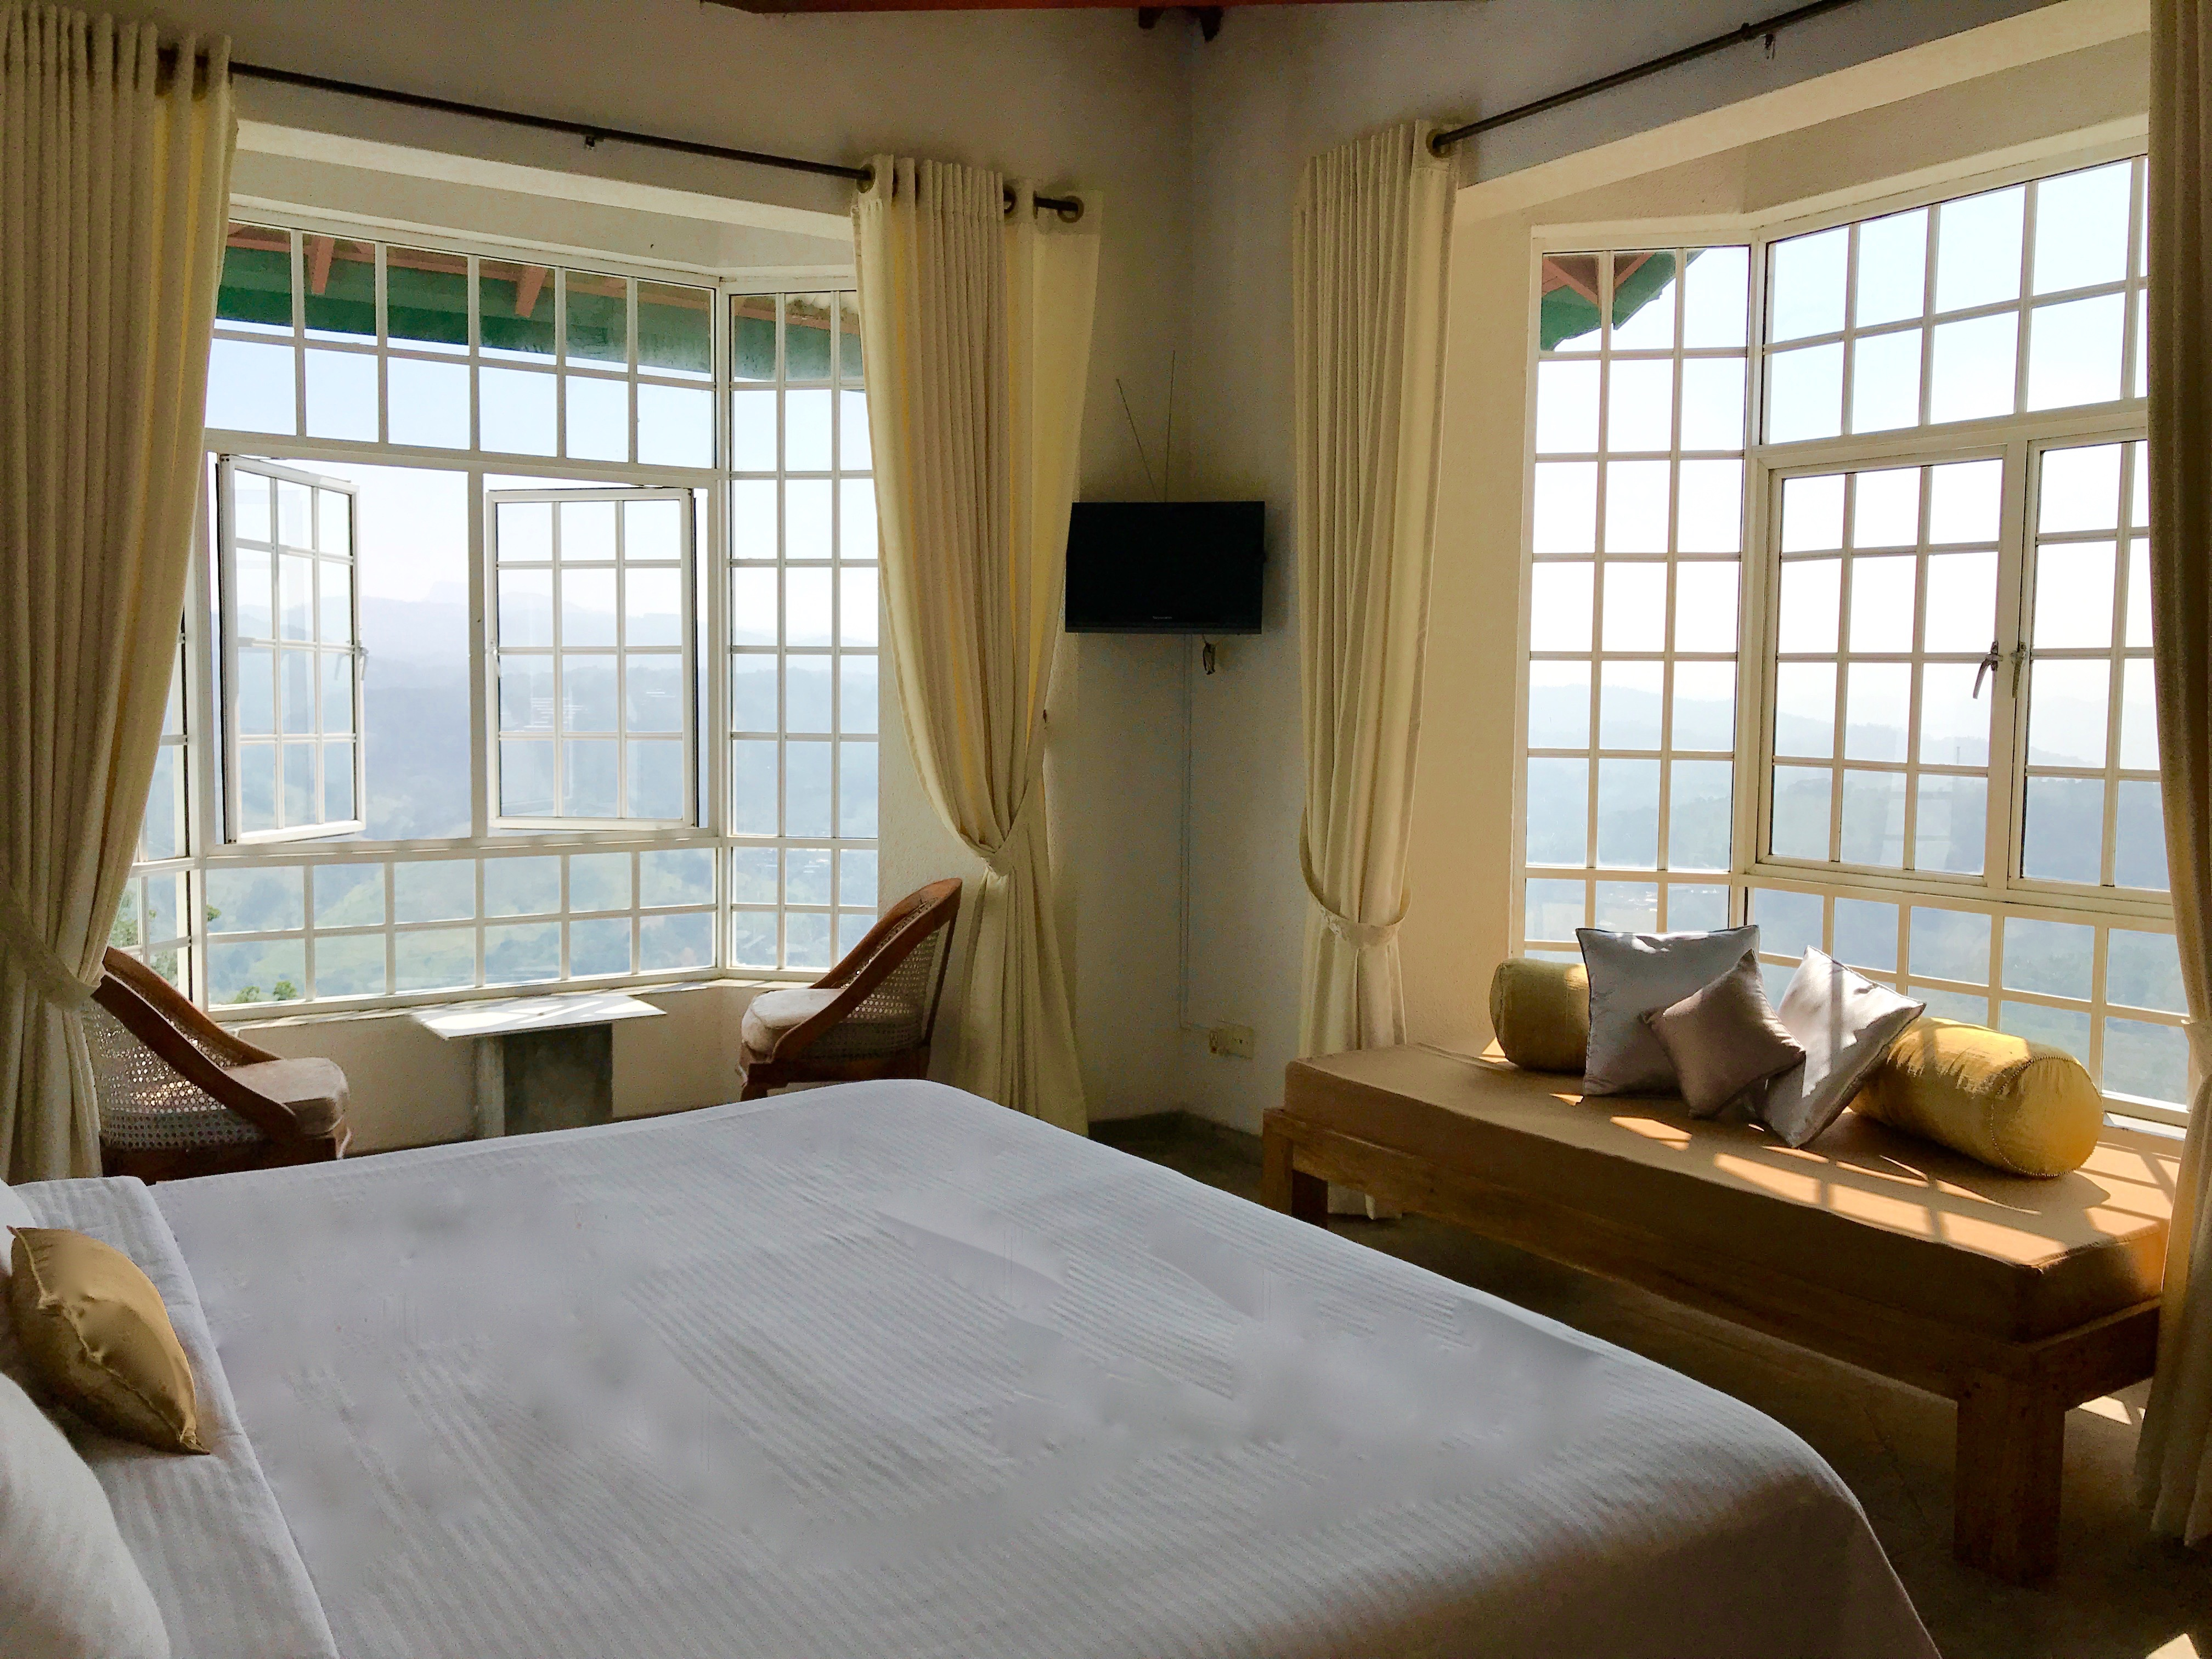 LUXURY ROOMS IN KANDY WITH A VIEW